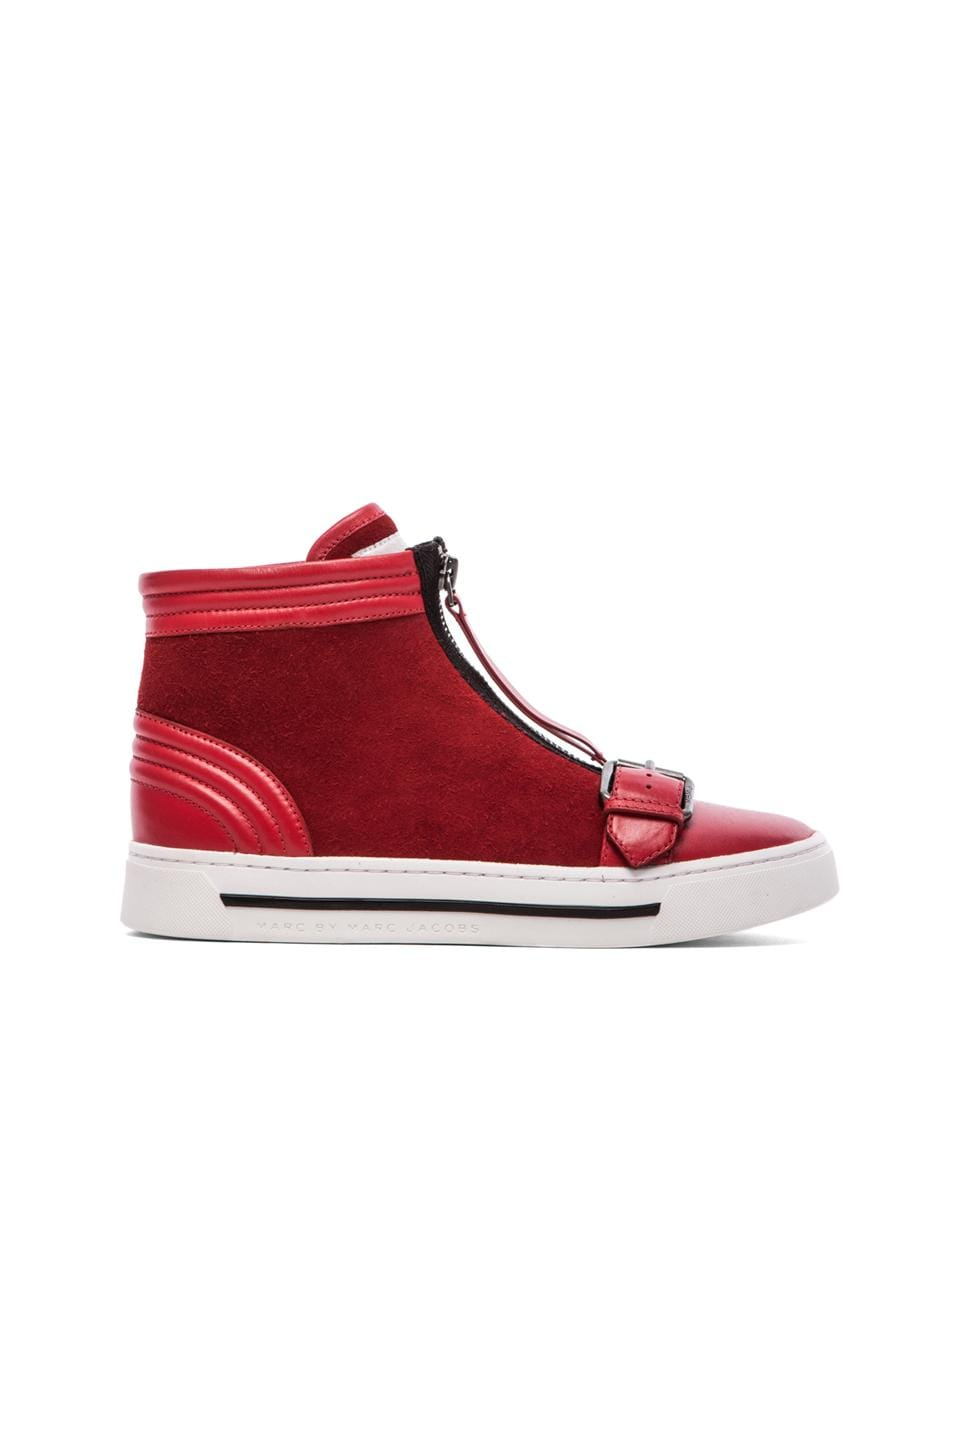 Marc by Marc Jacobs BMX Hi Top Sneakers in Red